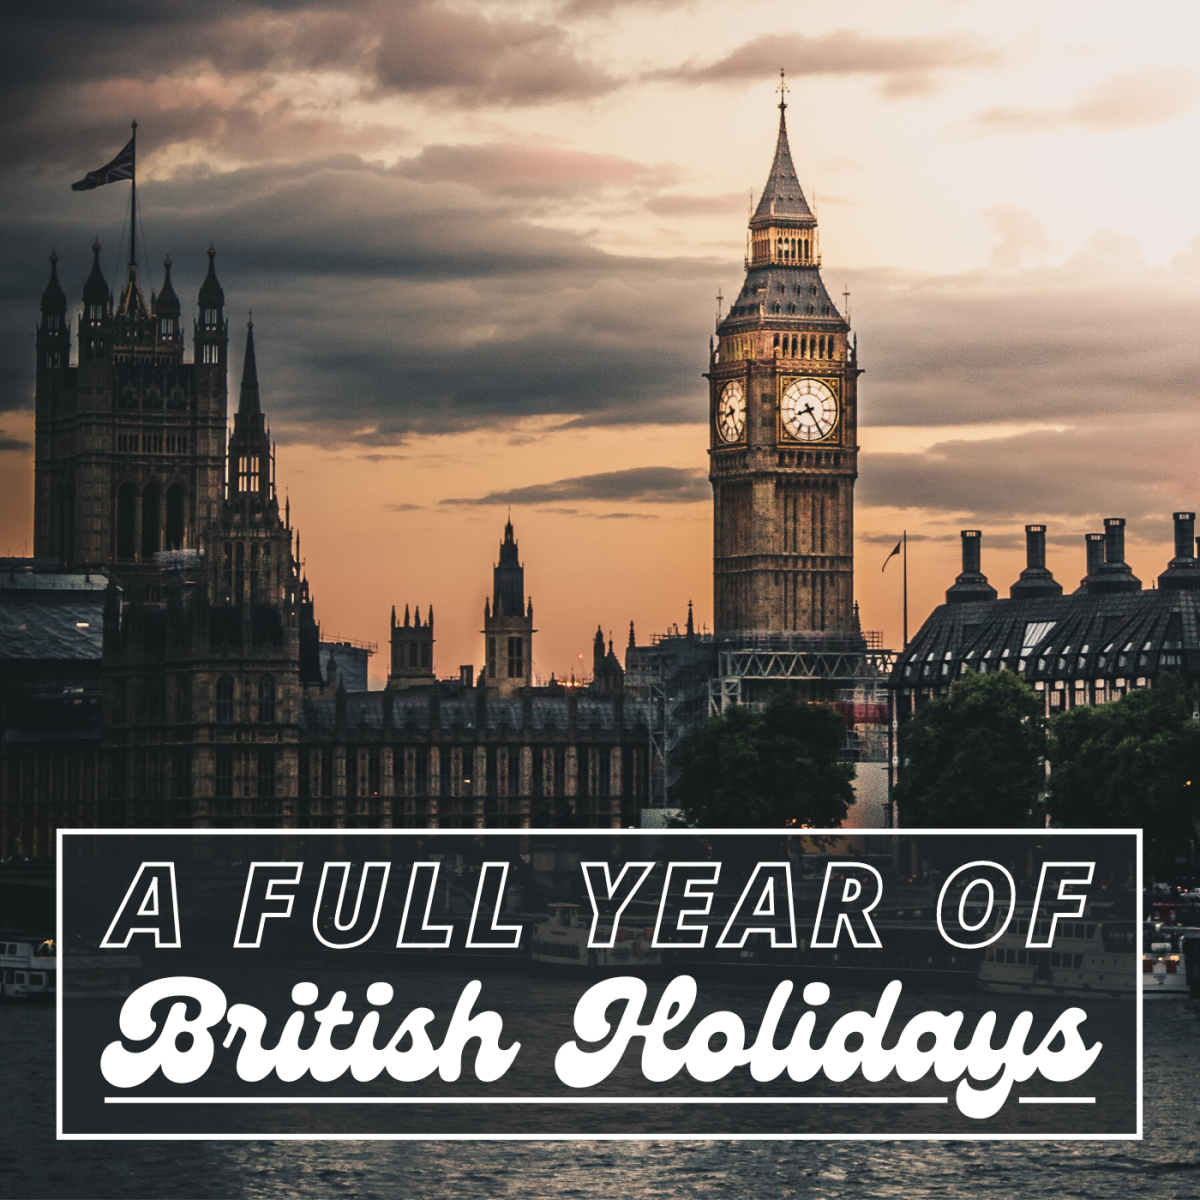 Learn about the most celebrated annual occasions in the United Kingdom with this year-long roundup.